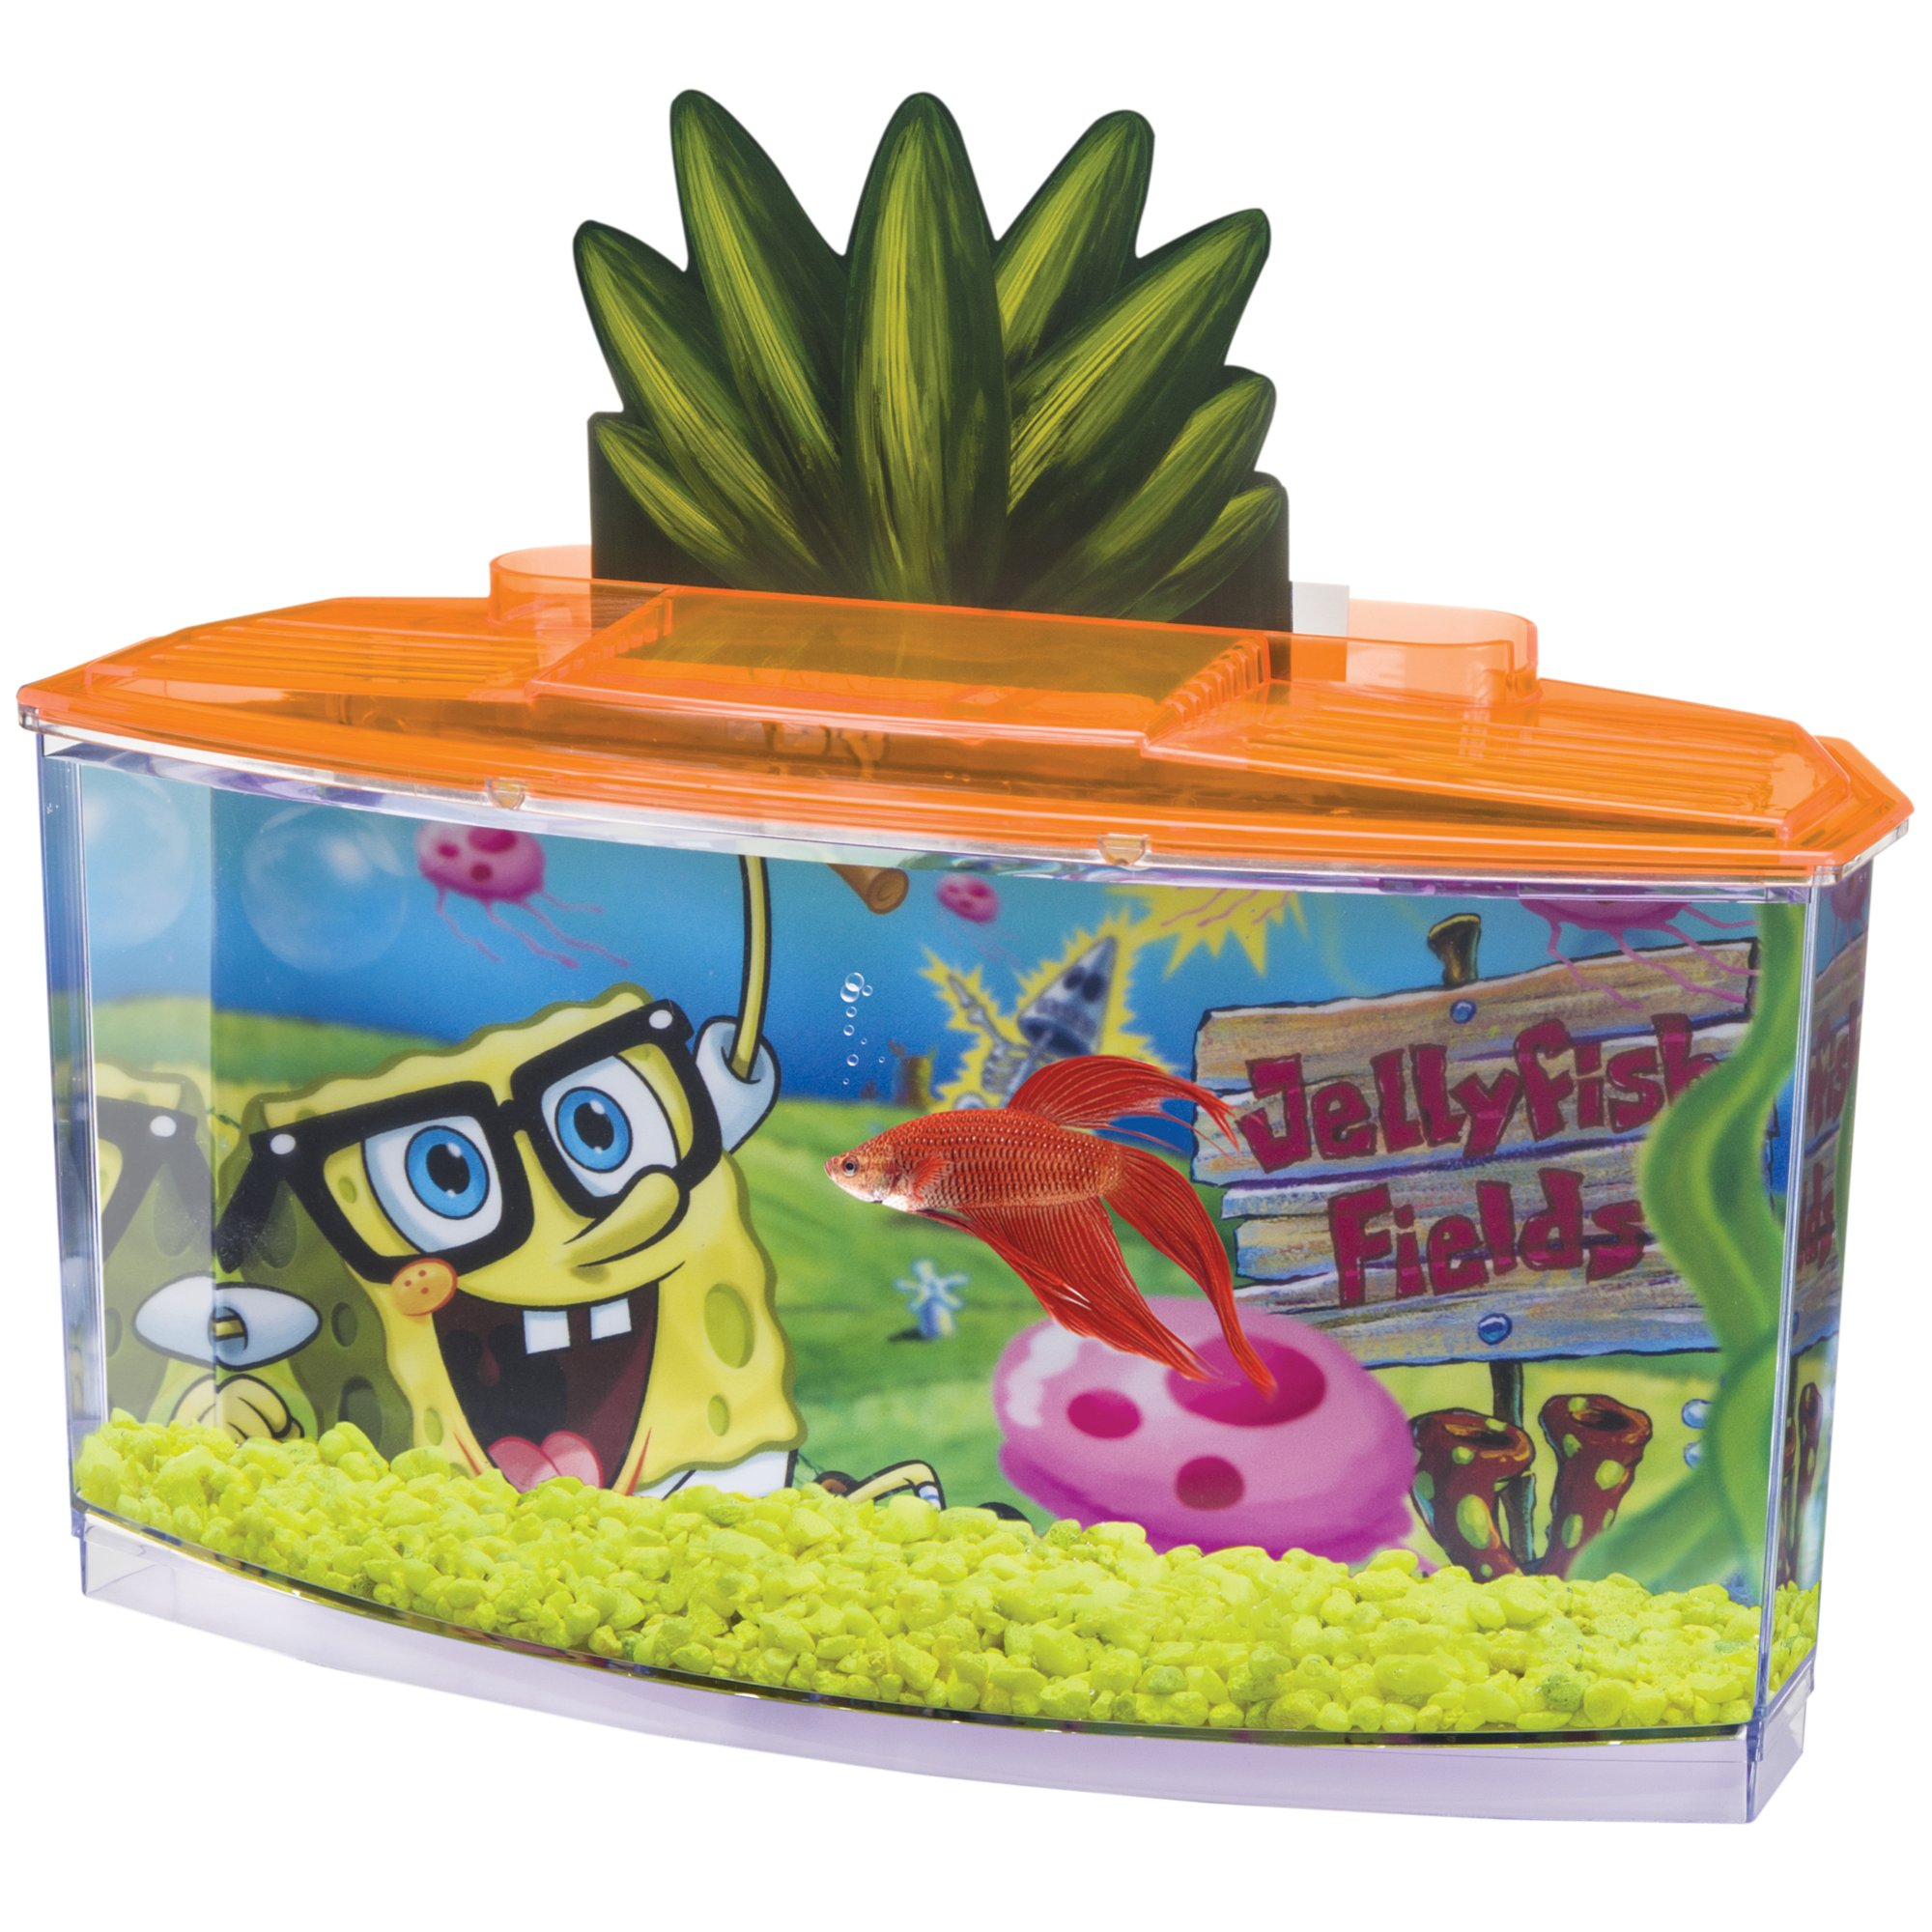 Penn plax spongebob squarepants betta aquarium kit 0 7 for Betta fish tanks petco